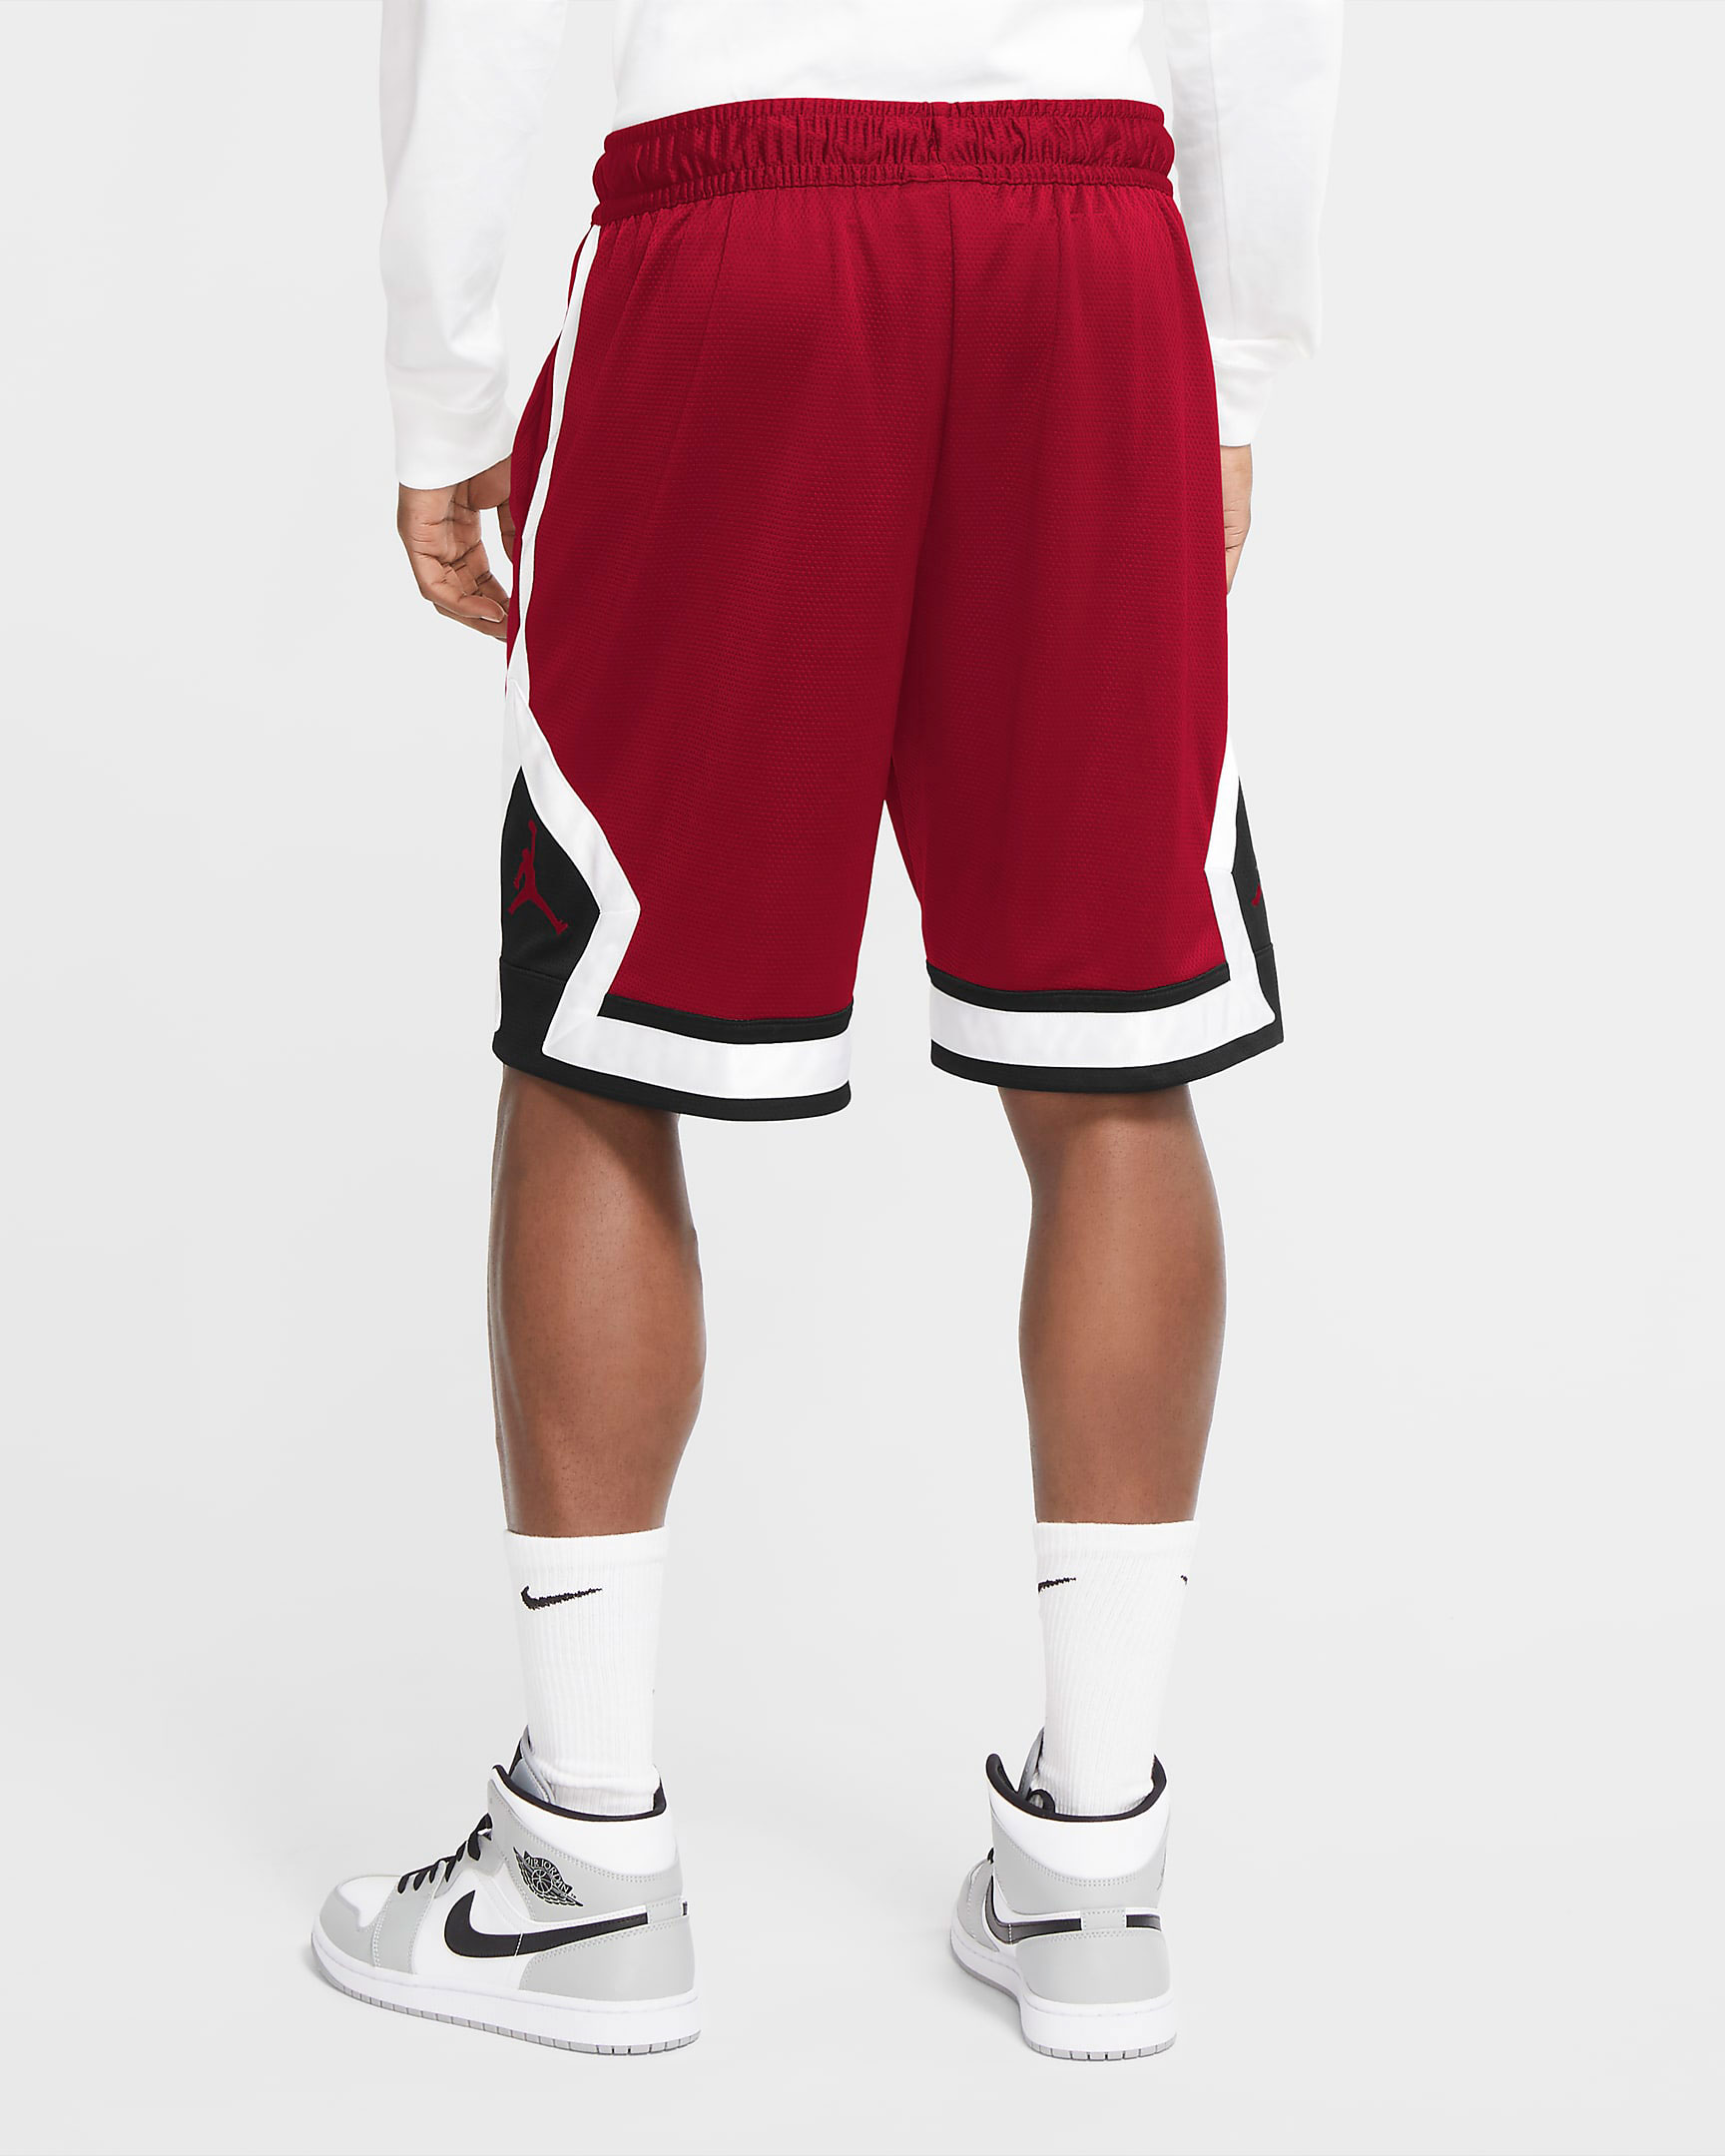 jordan-jumpman-diamond-shorts-gym-red-black-white-2